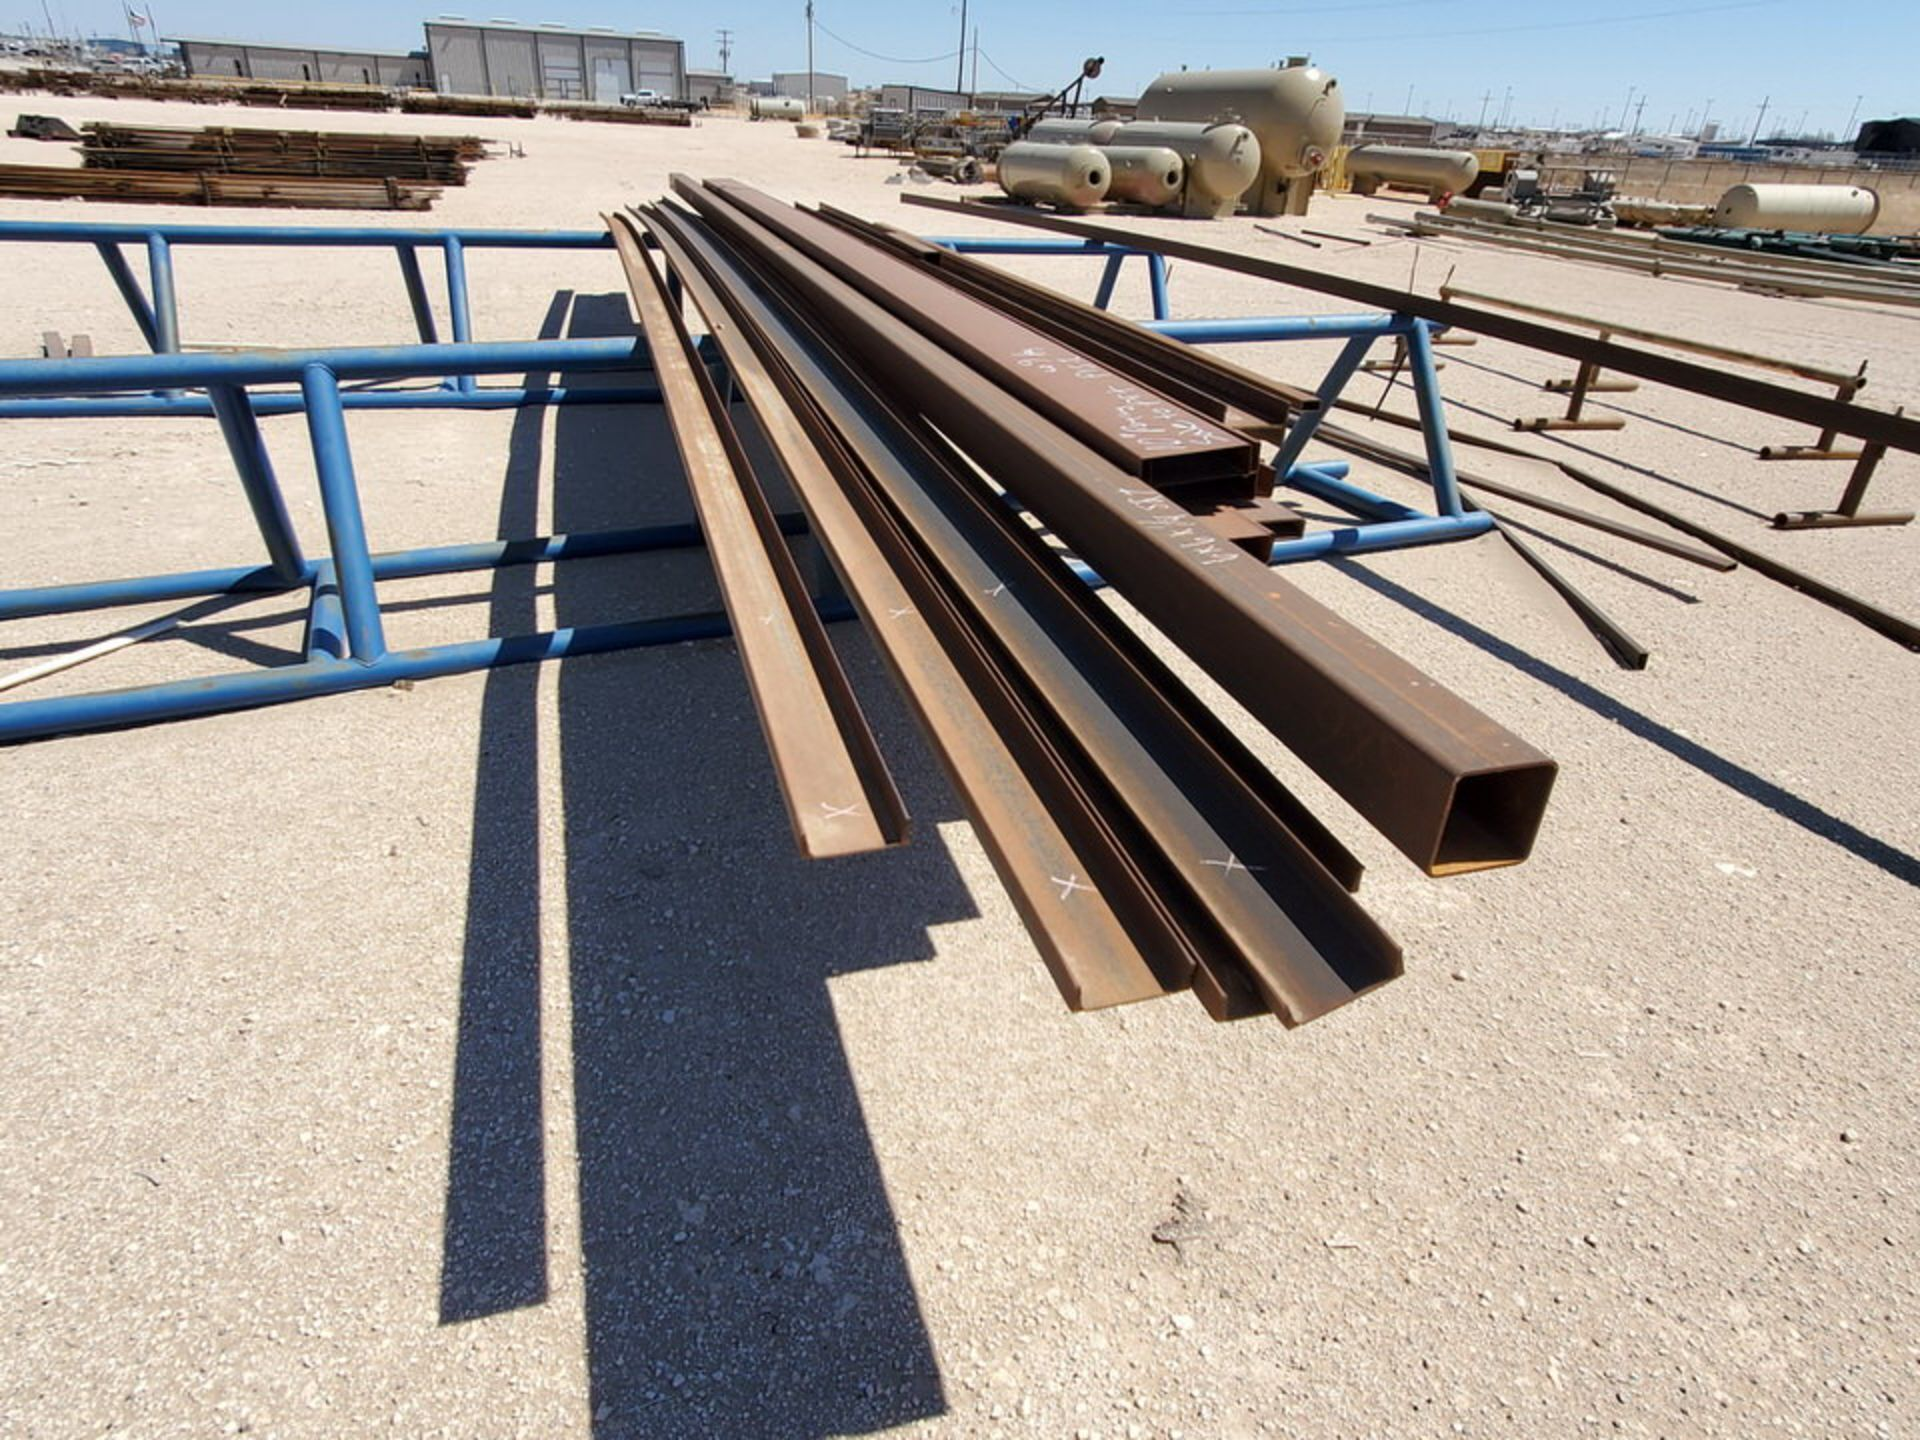 "Assorted Matl. To Include But Not Limited To: Angle, Channel, Sq. Tubing, Rect. Tubing, etc., 6"" - - Image 13 of 16"